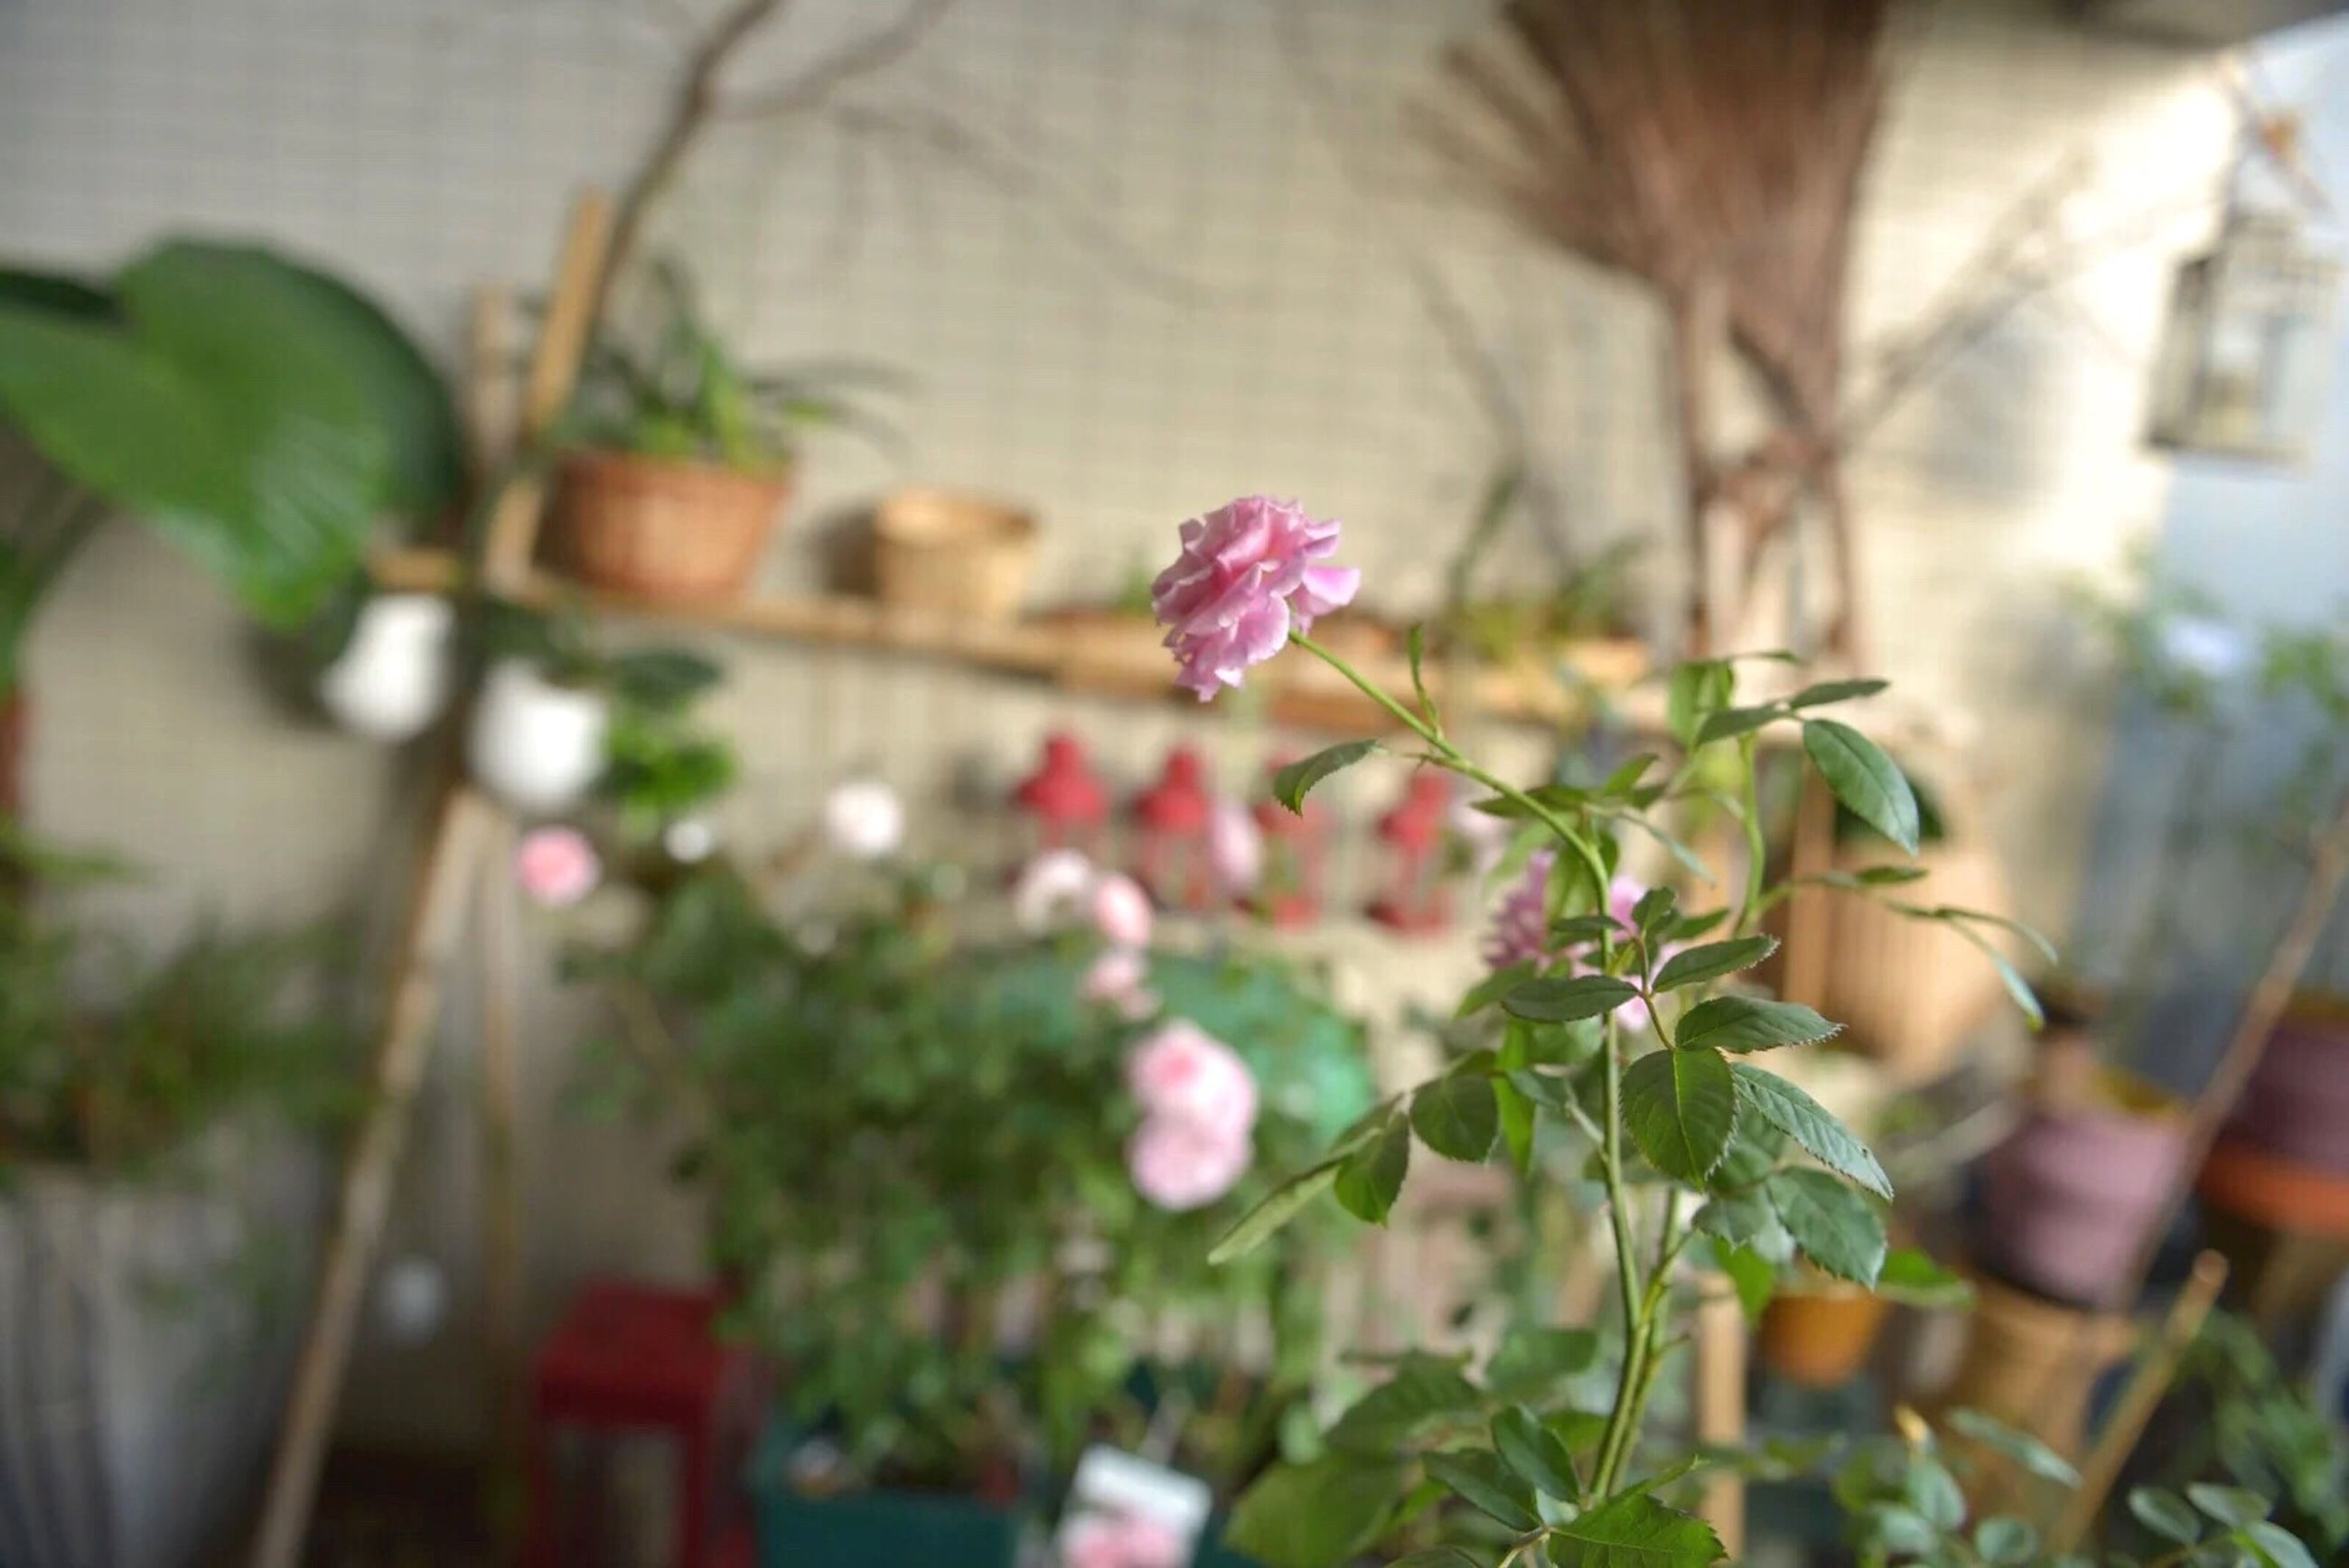 flower, growth, plant, focus on foreground, freshness, fragility, close-up, leaf, stem, nature, selective focus, beauty in nature, potted plant, bud, day, growing, front or back yard, blooming, pink color, building exterior